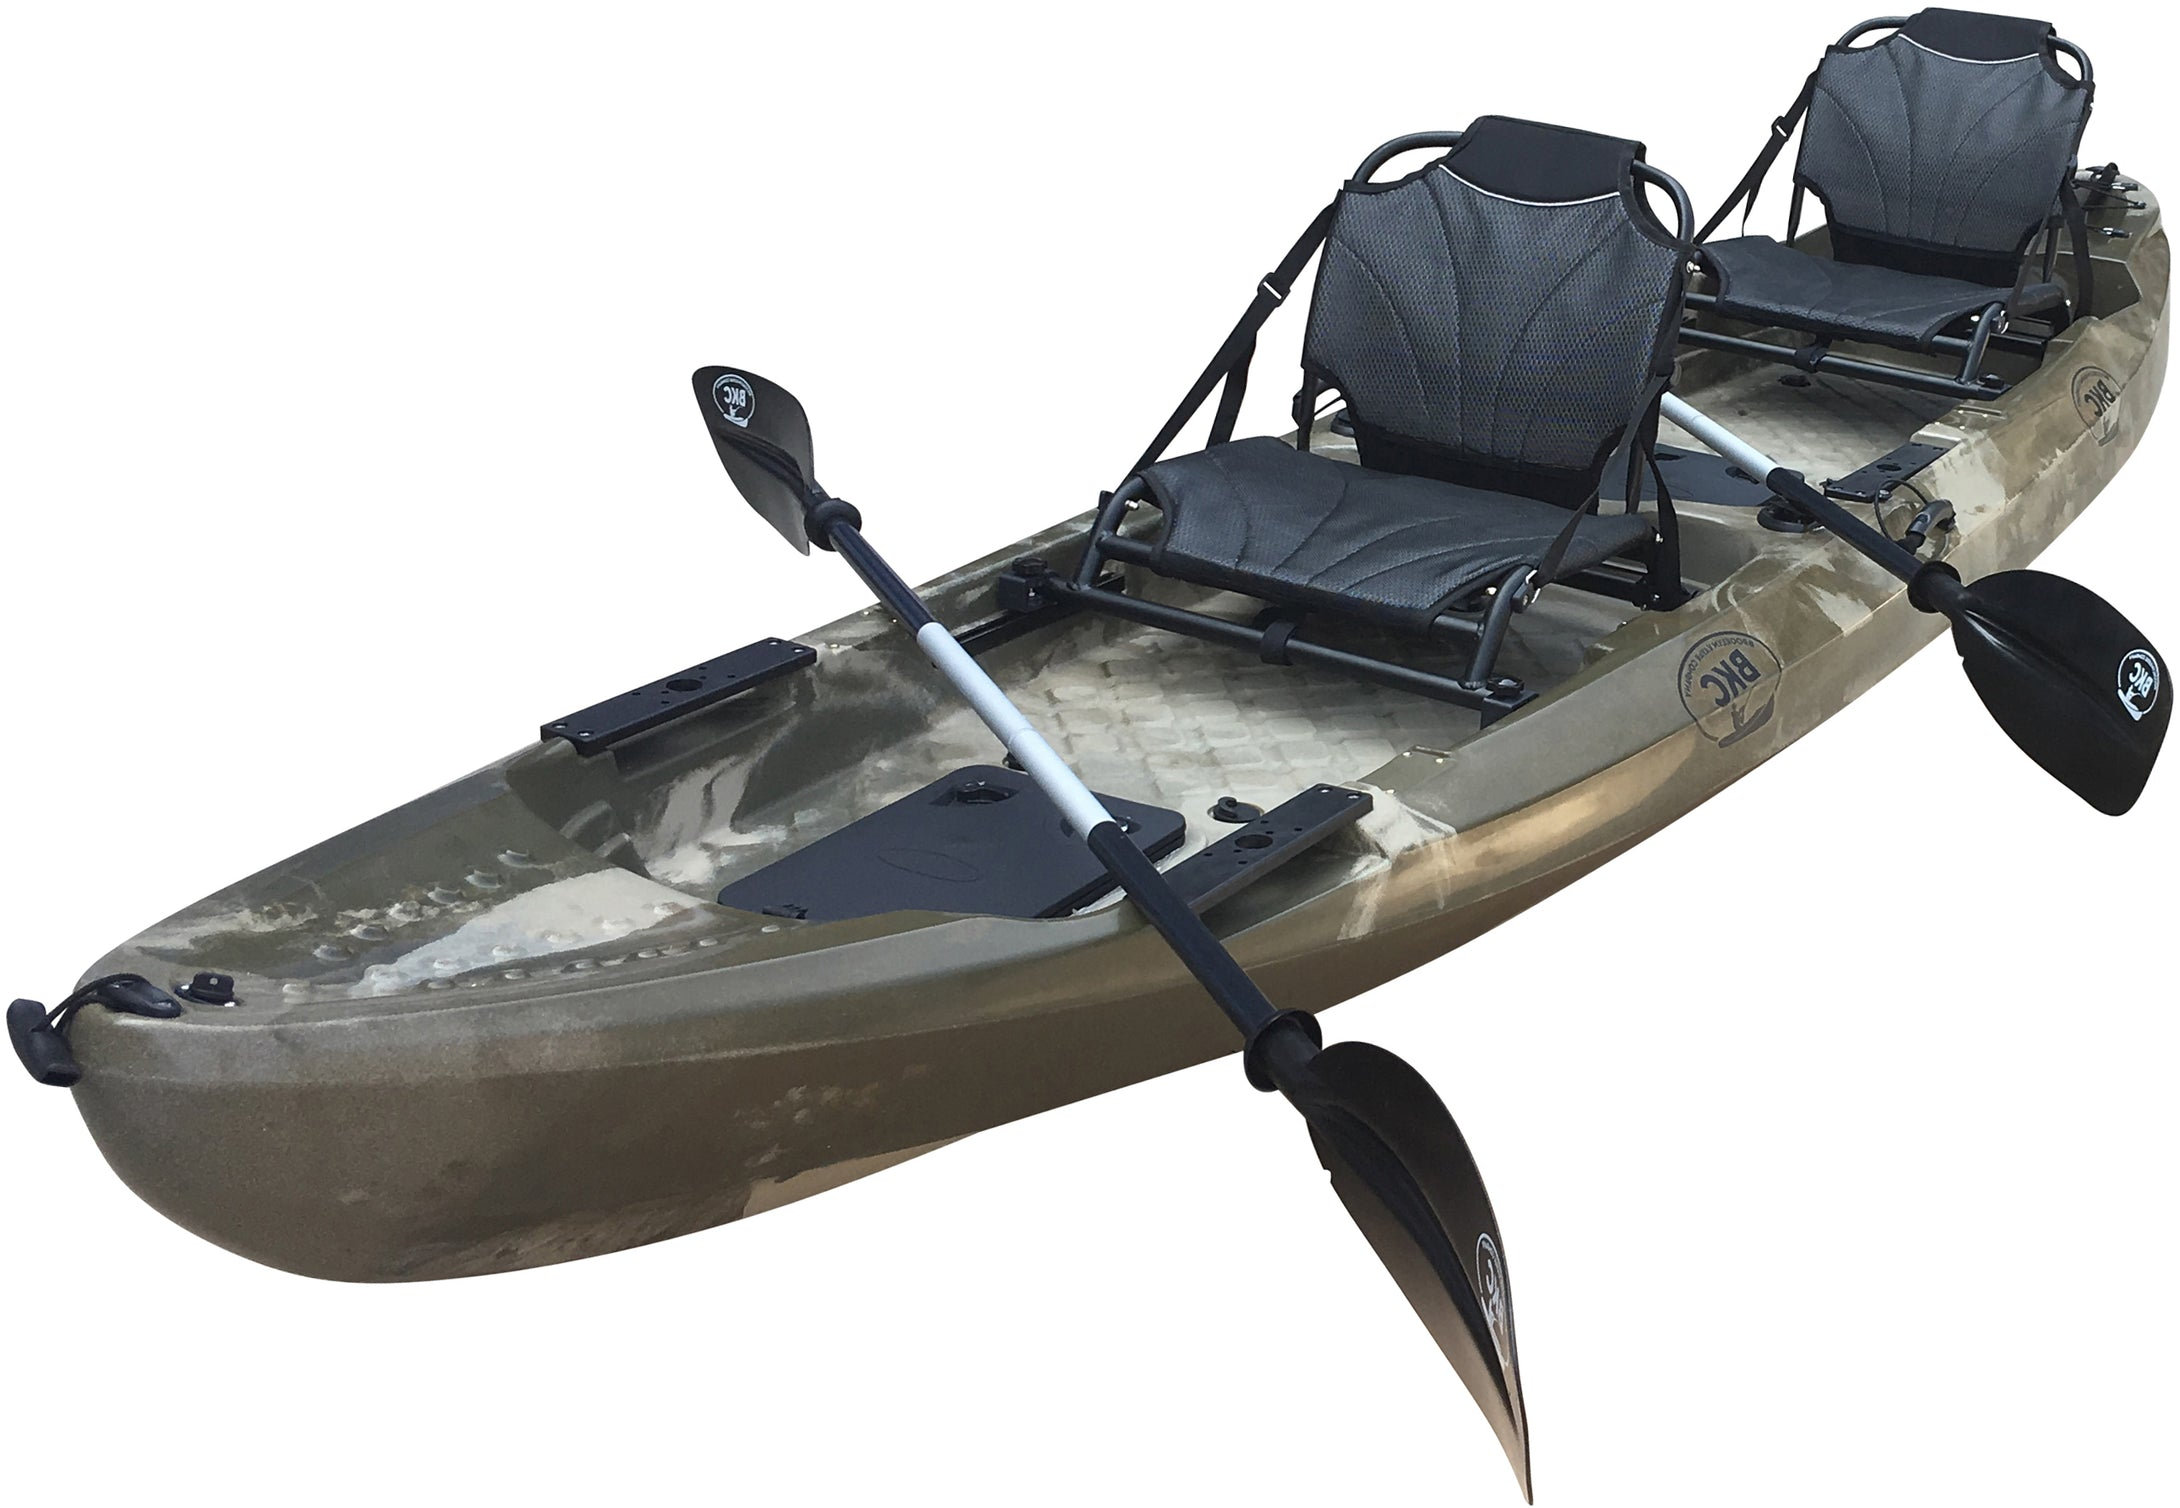 BKC UH-TK29 13-Foot 1-inch Tandem 2 Person Sit On Top Fishing Kayak with 2 Up-Right Seats and 2 Paddles Included